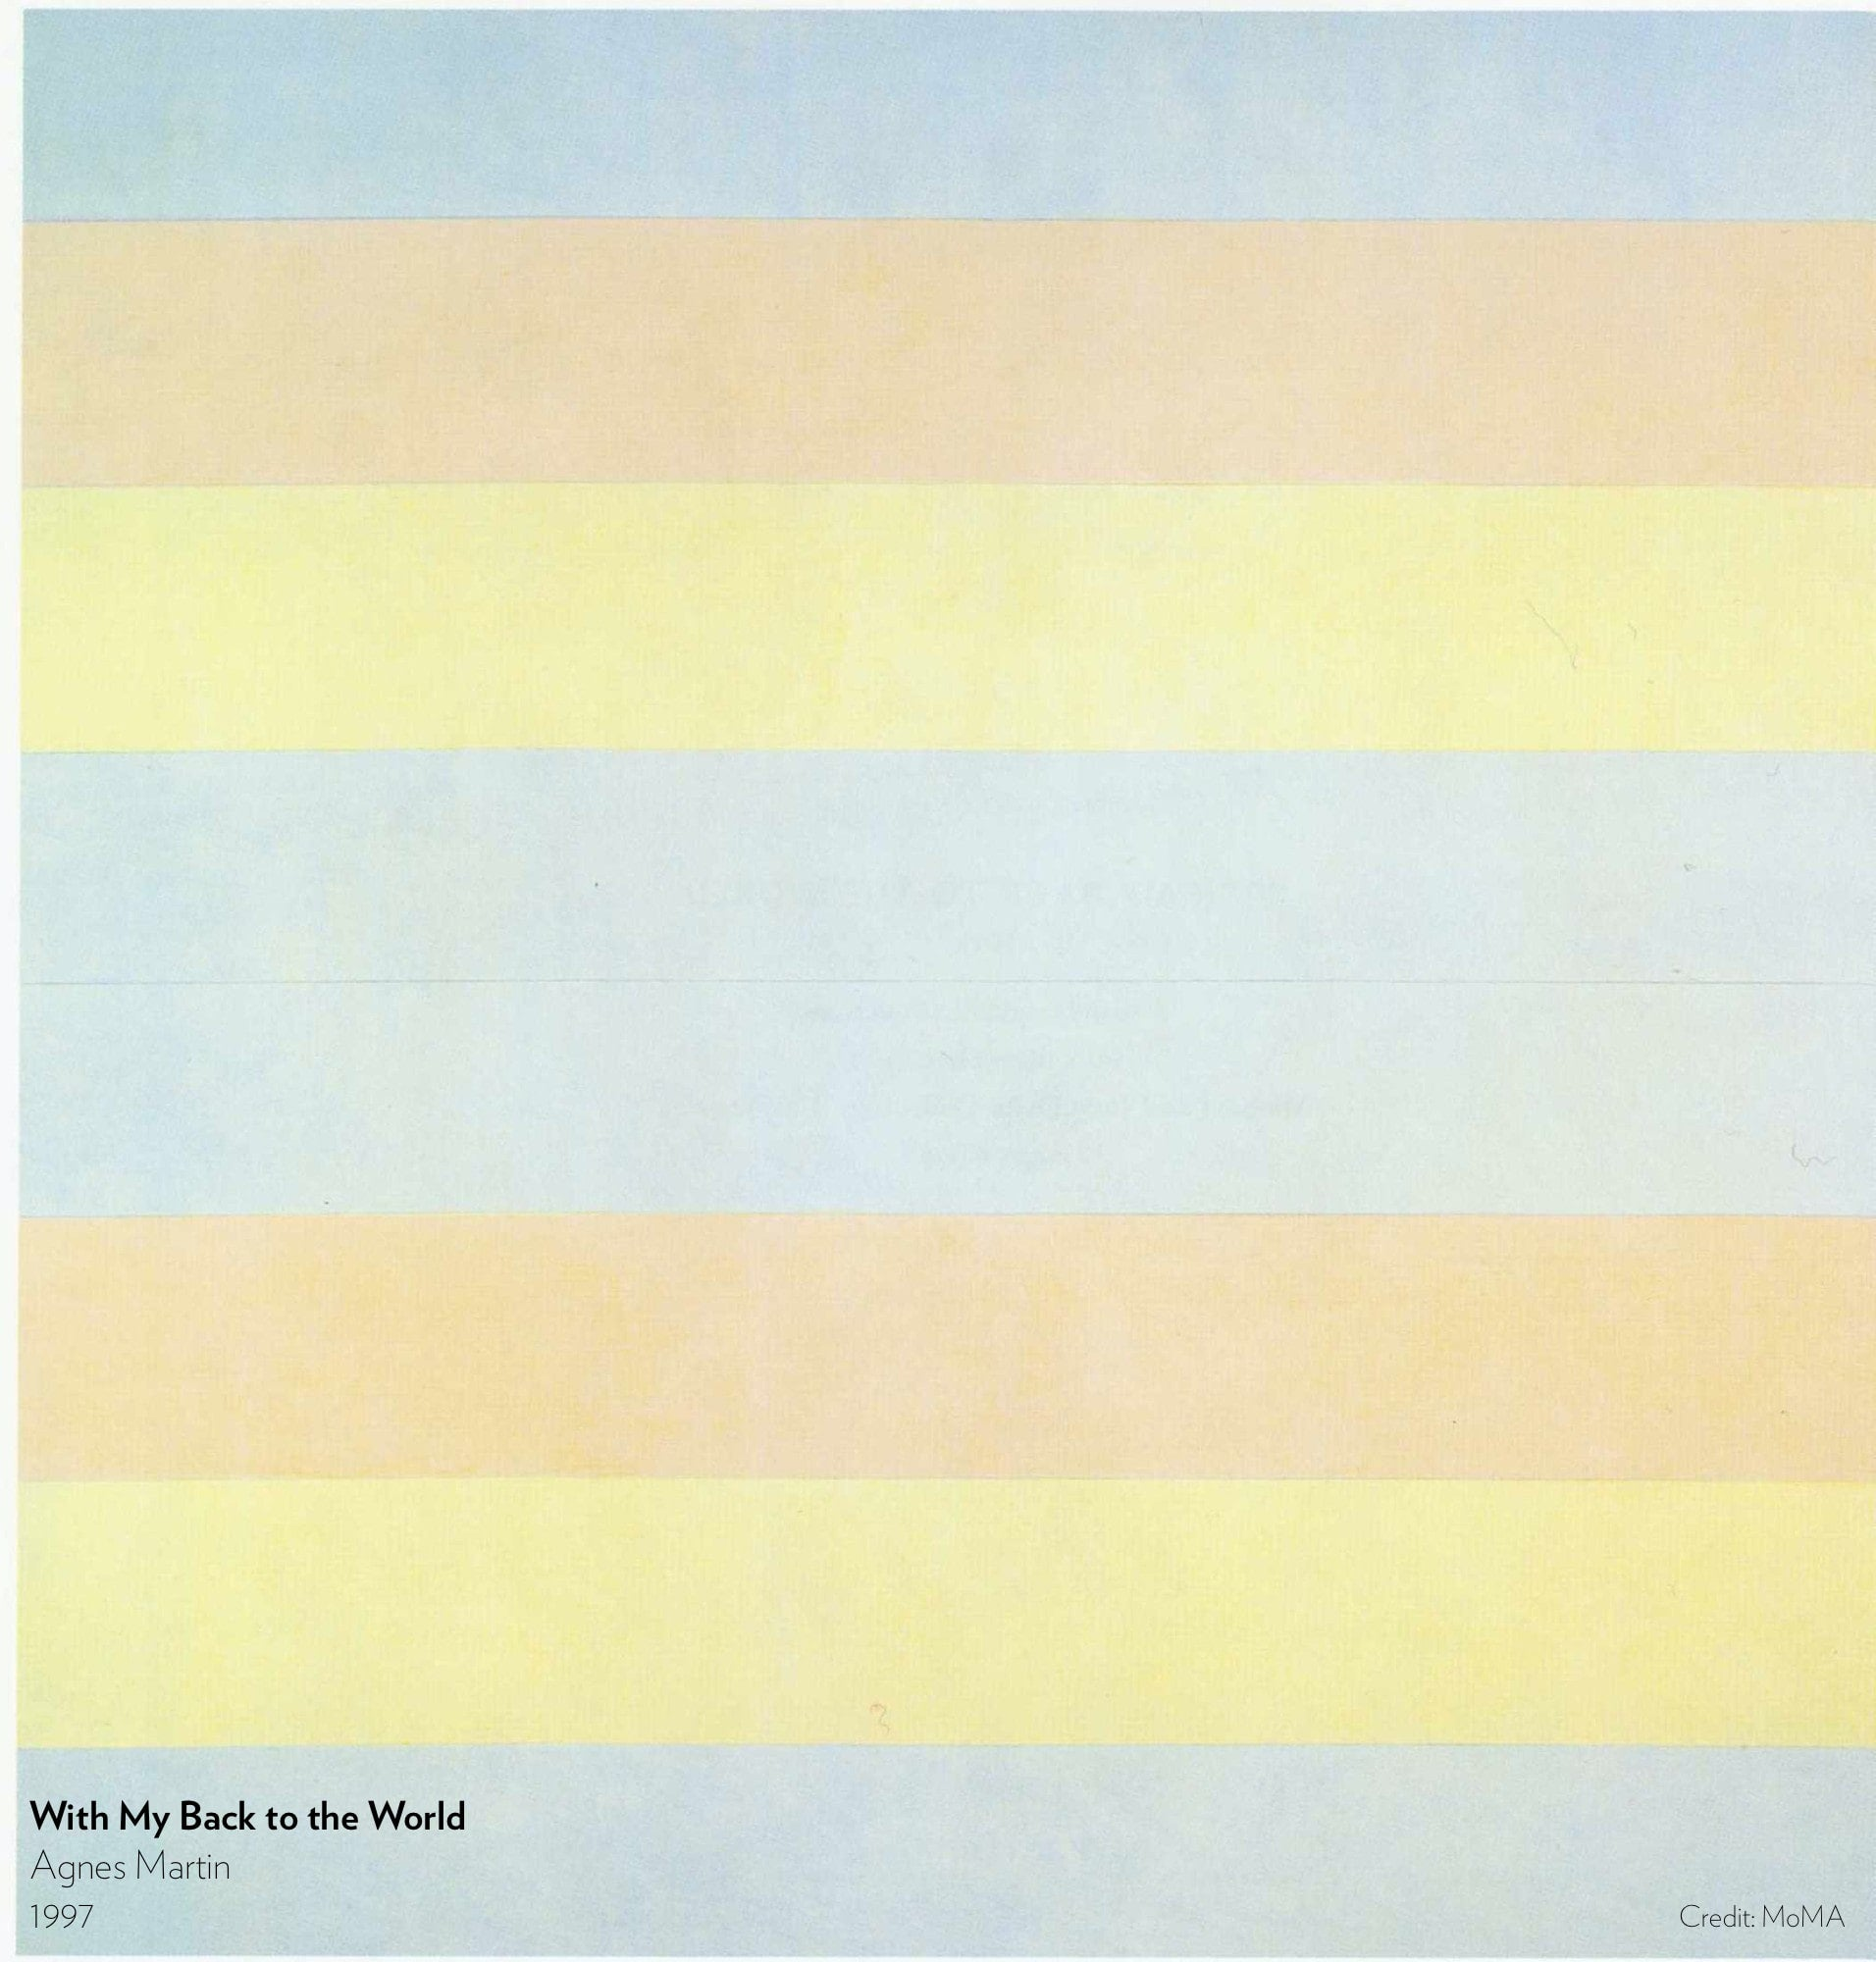 With My Back to the World. Painting by Agnes Martin, 1997.